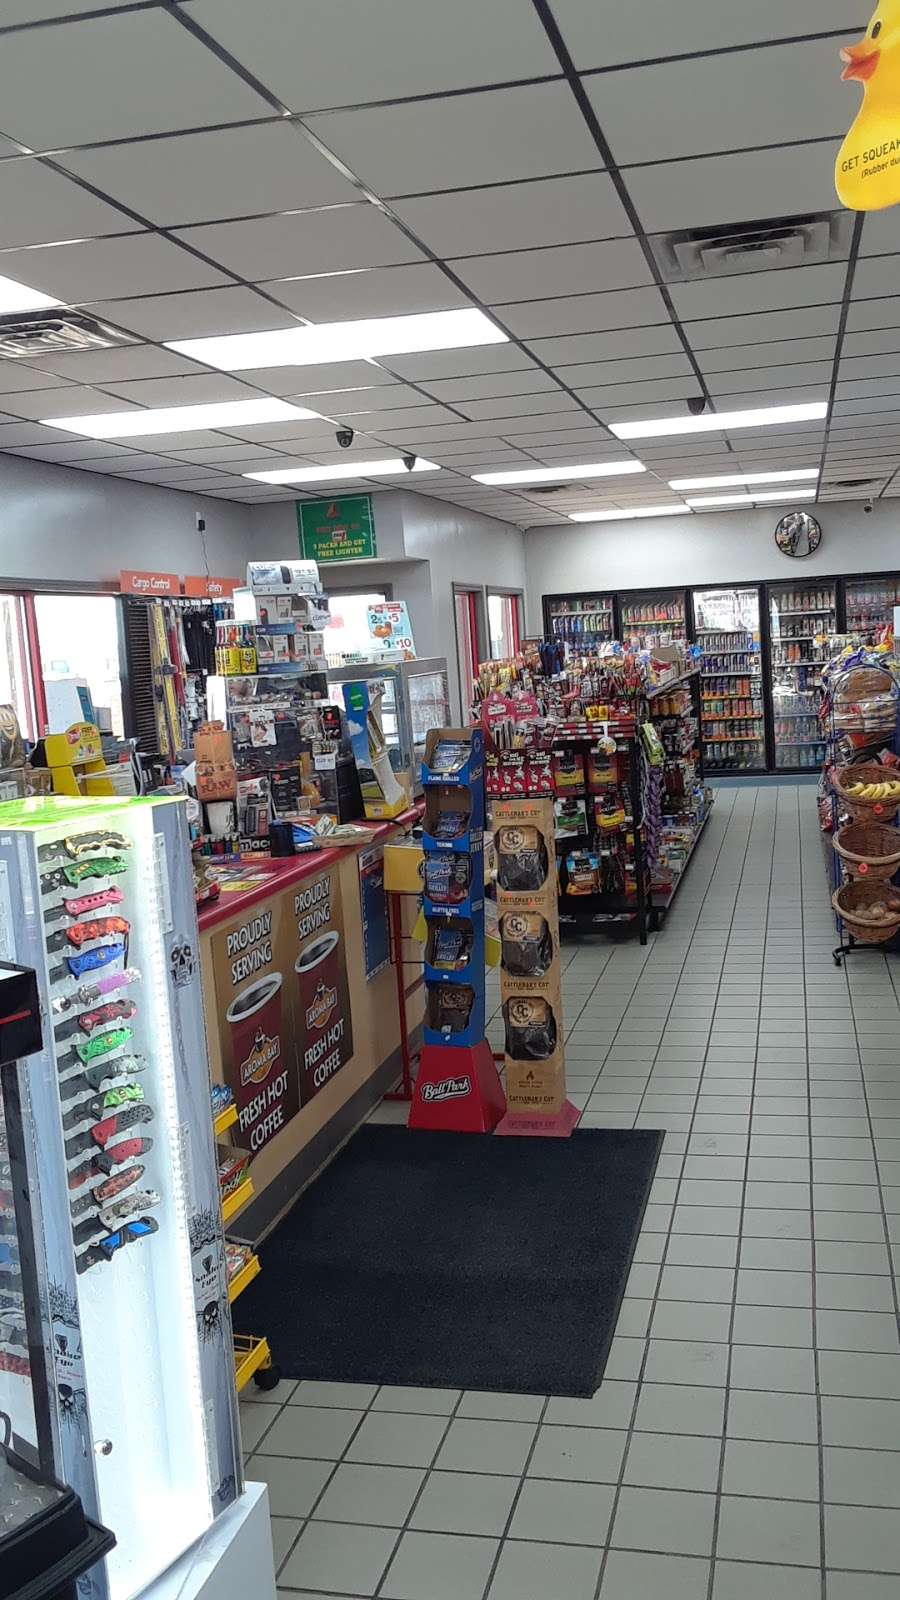 HANKS TRUCK STOP - gas station  | Photo 4 of 10 | Address: 1799 US-30, Hanna, IN 46340, USA | Phone: (219) 797-2244